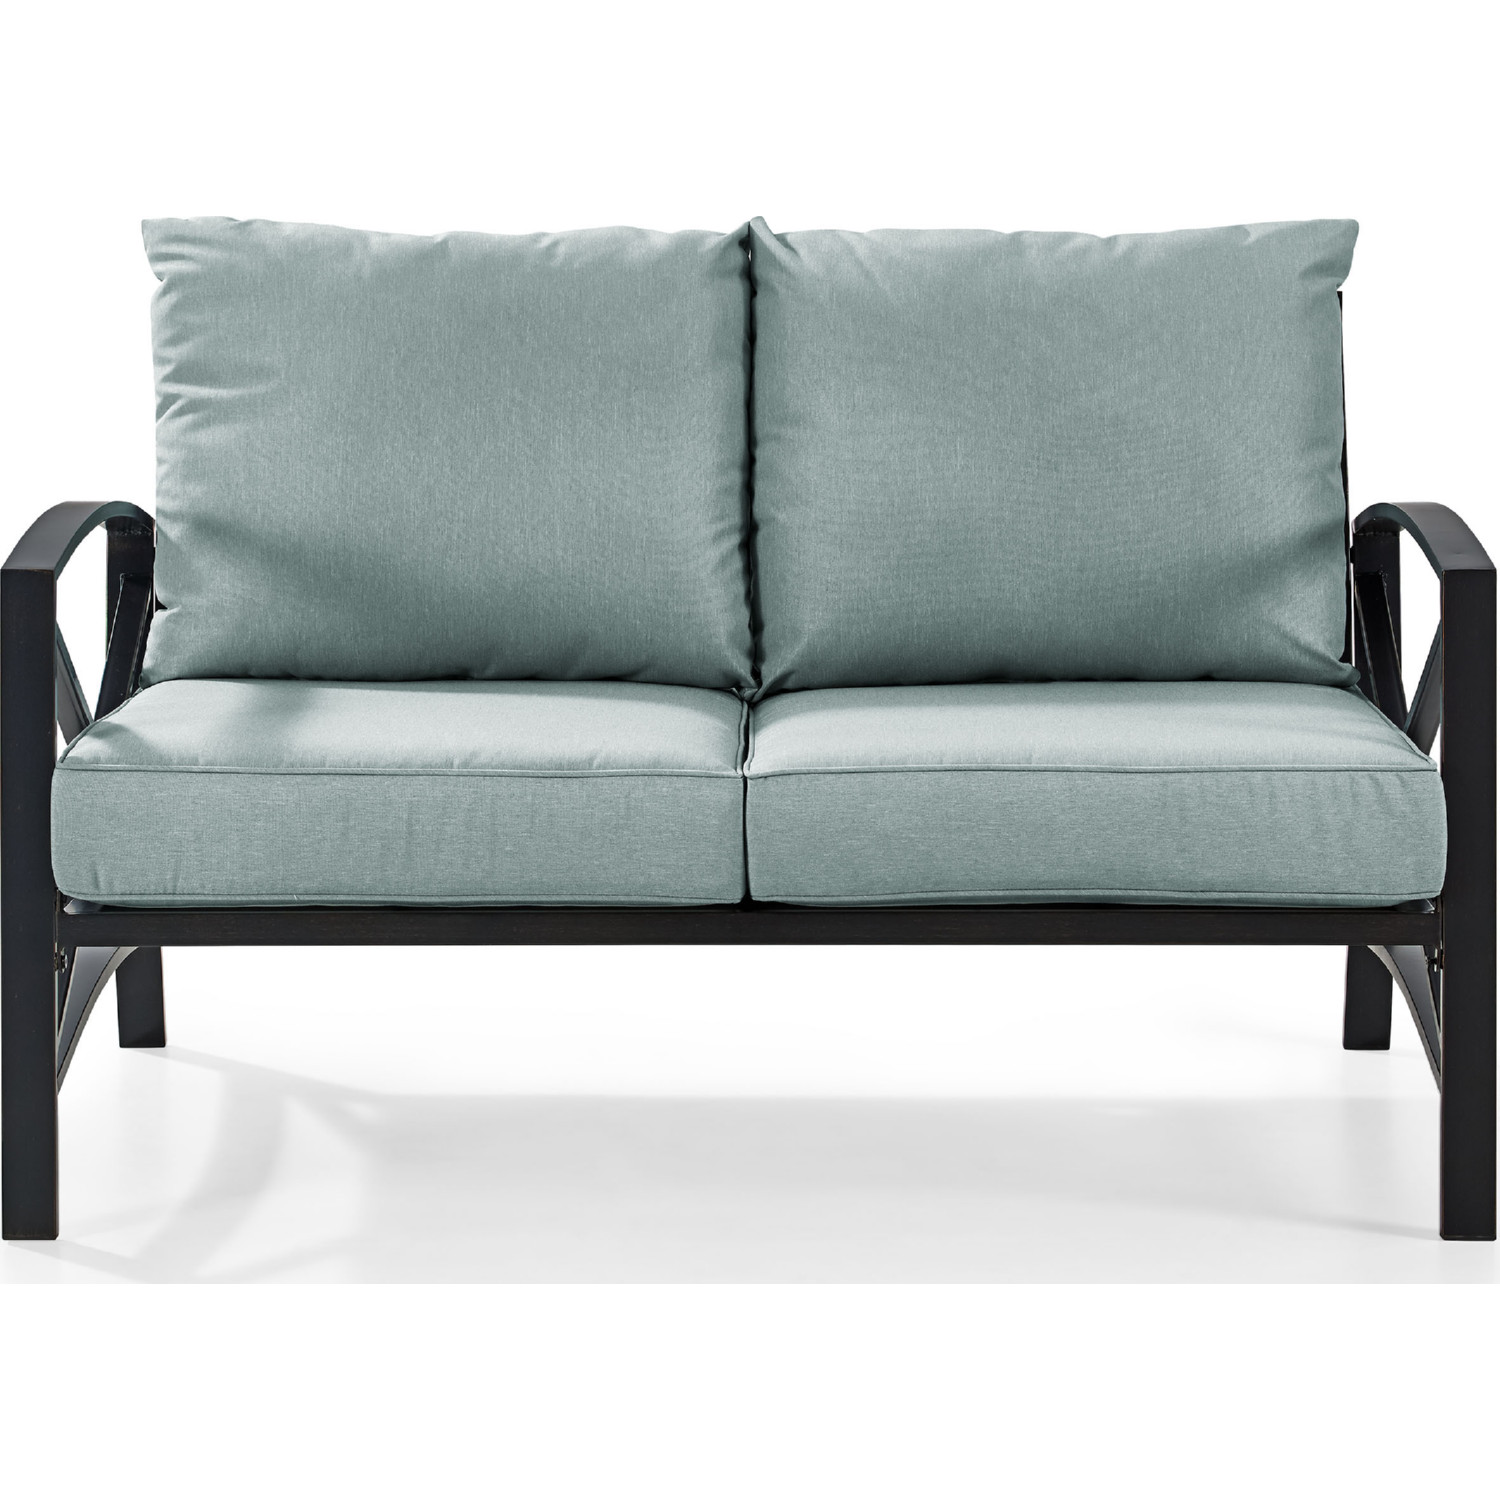 Bz Futon Kaplan Loveseat In Oiled Bronze Steel W Mist Cushion By Crosley